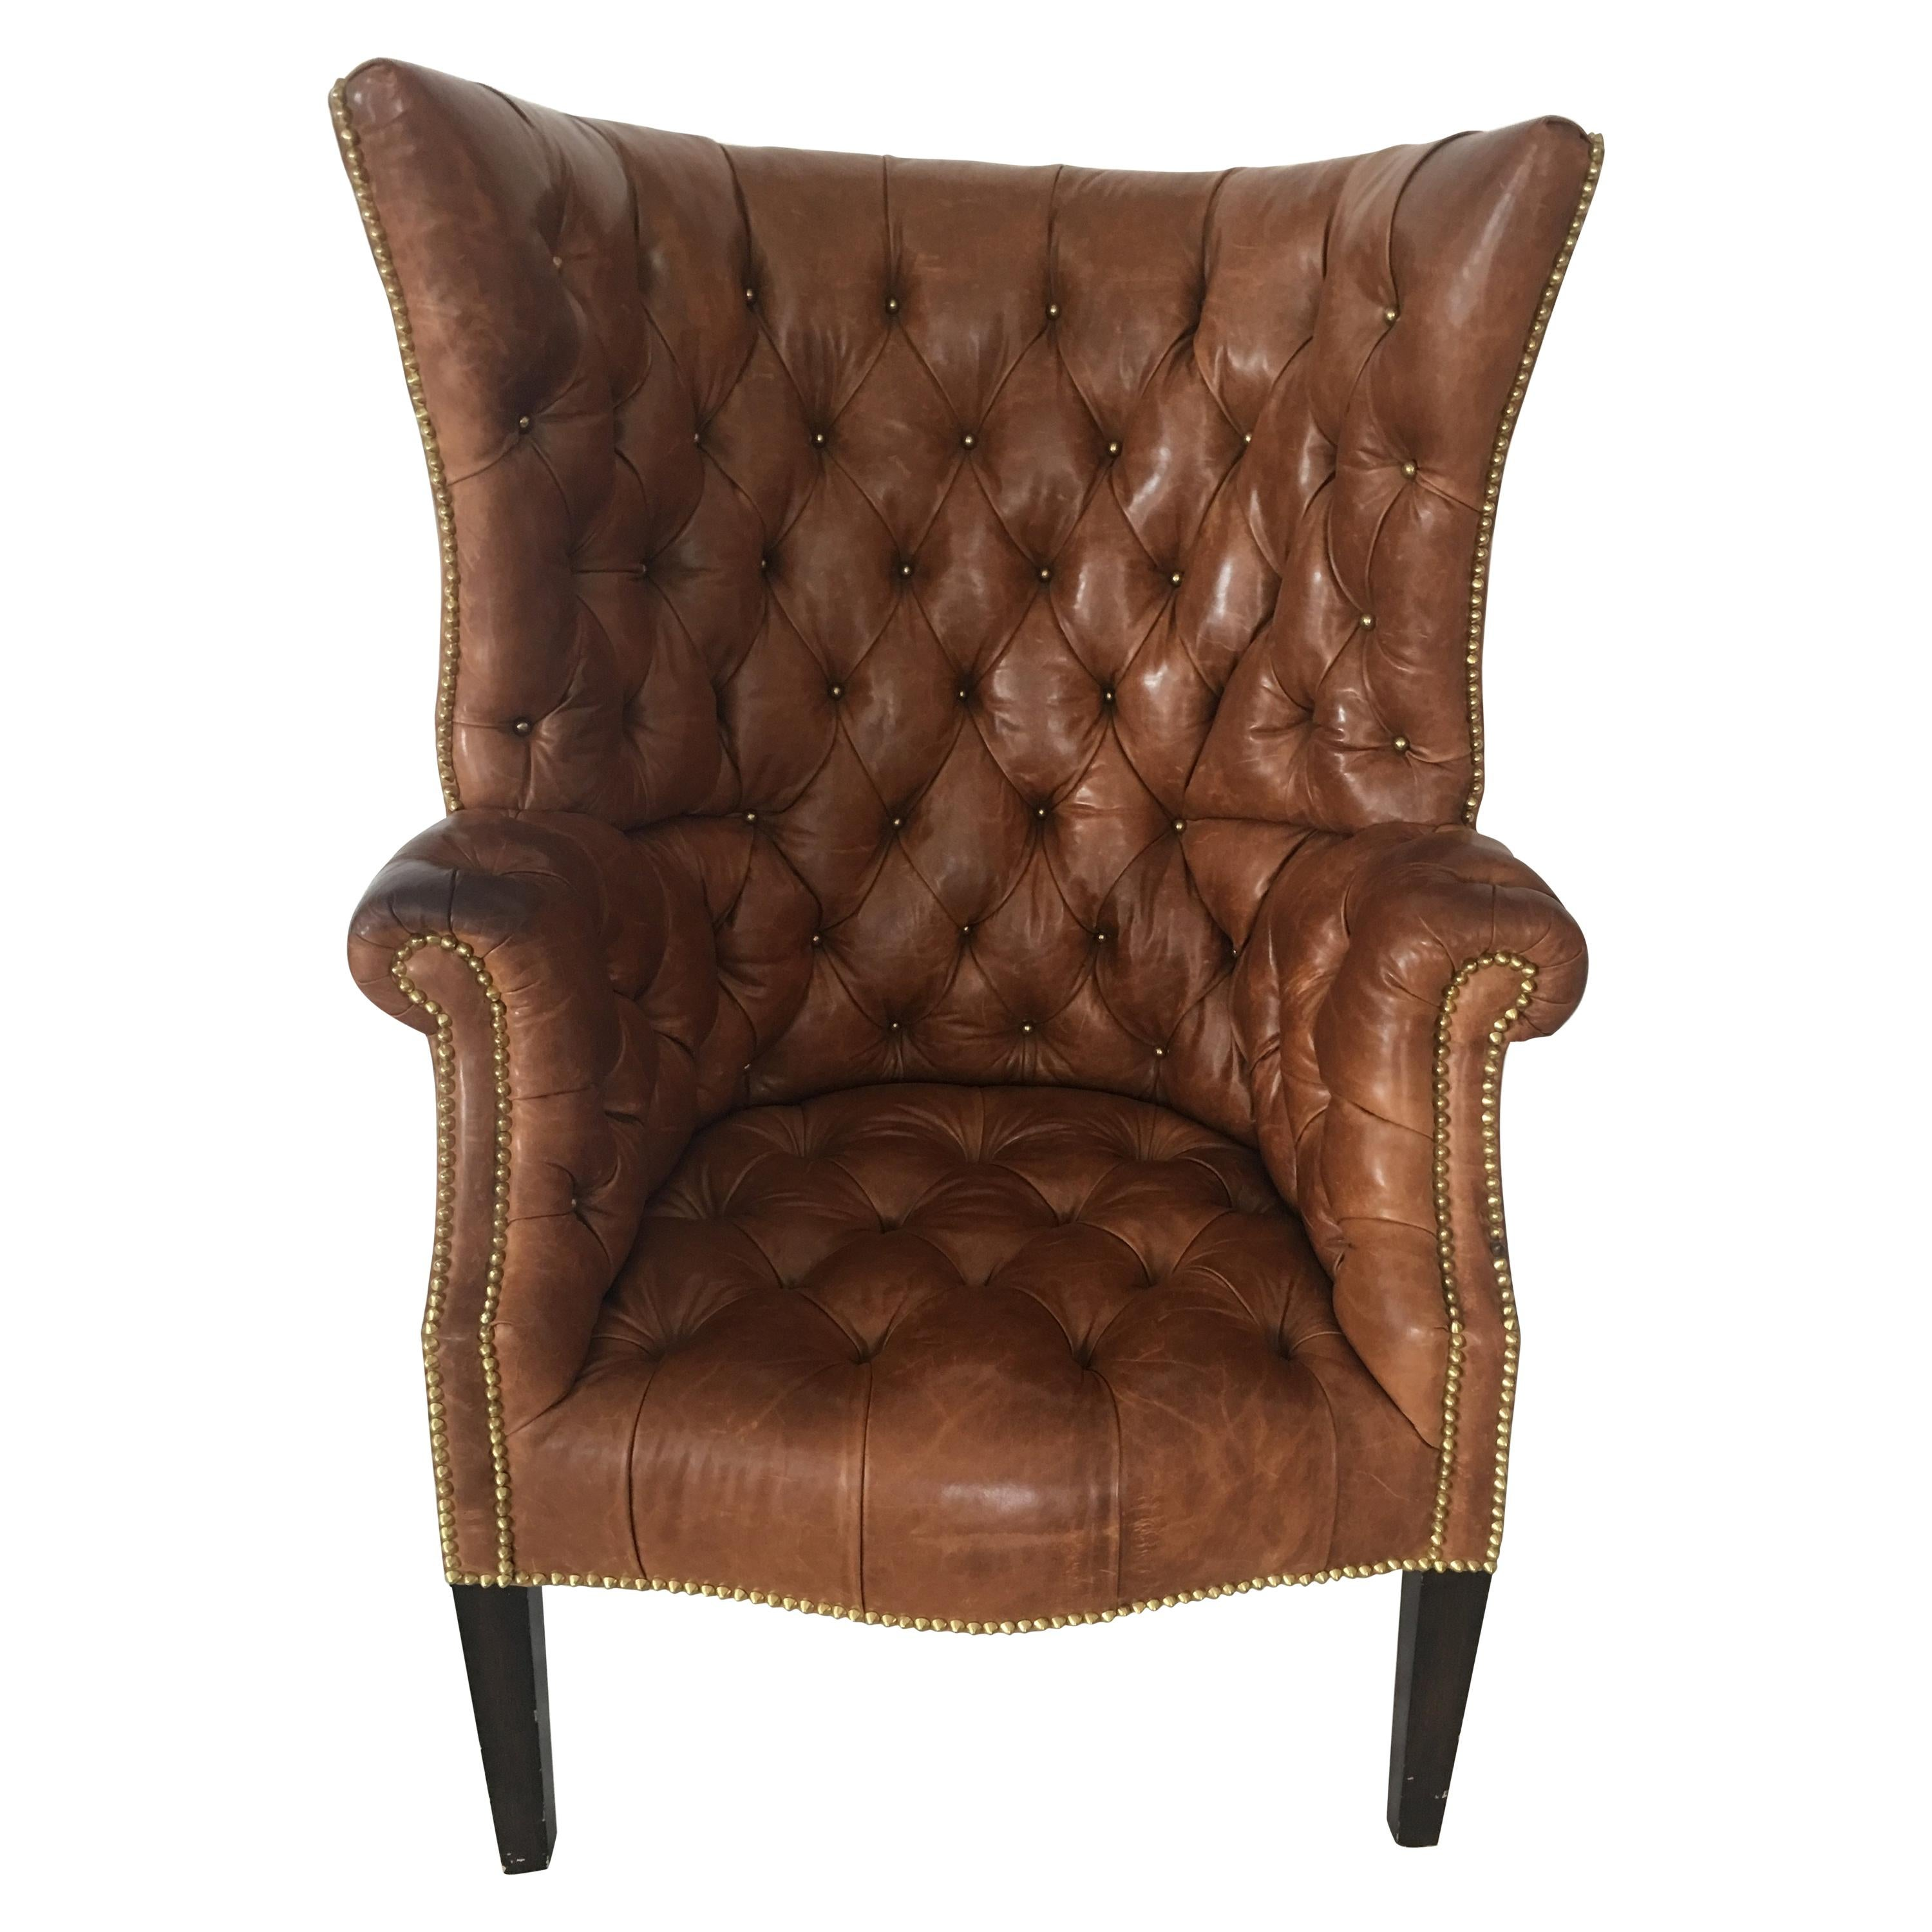 High Back Tufted Leather Chair For Sale at 1stdibs